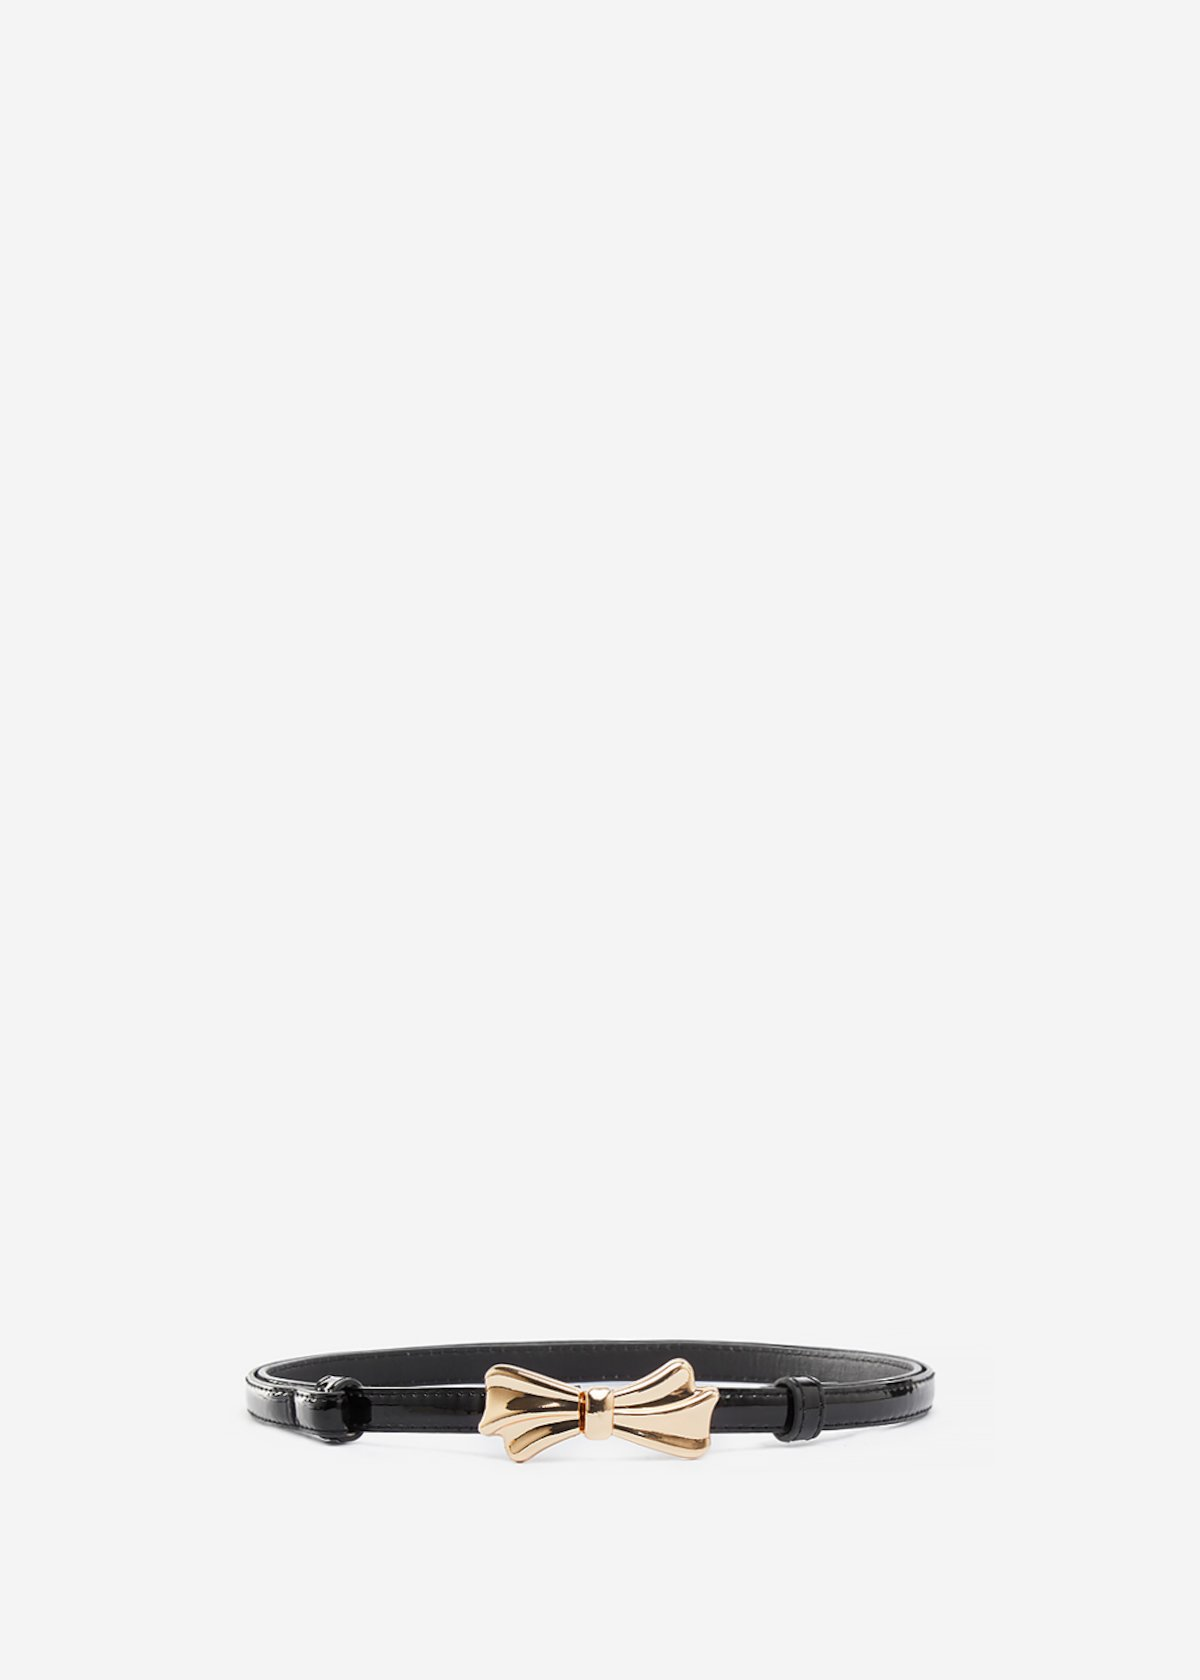 Faux leather Chicco belt with light-gold bow - Black